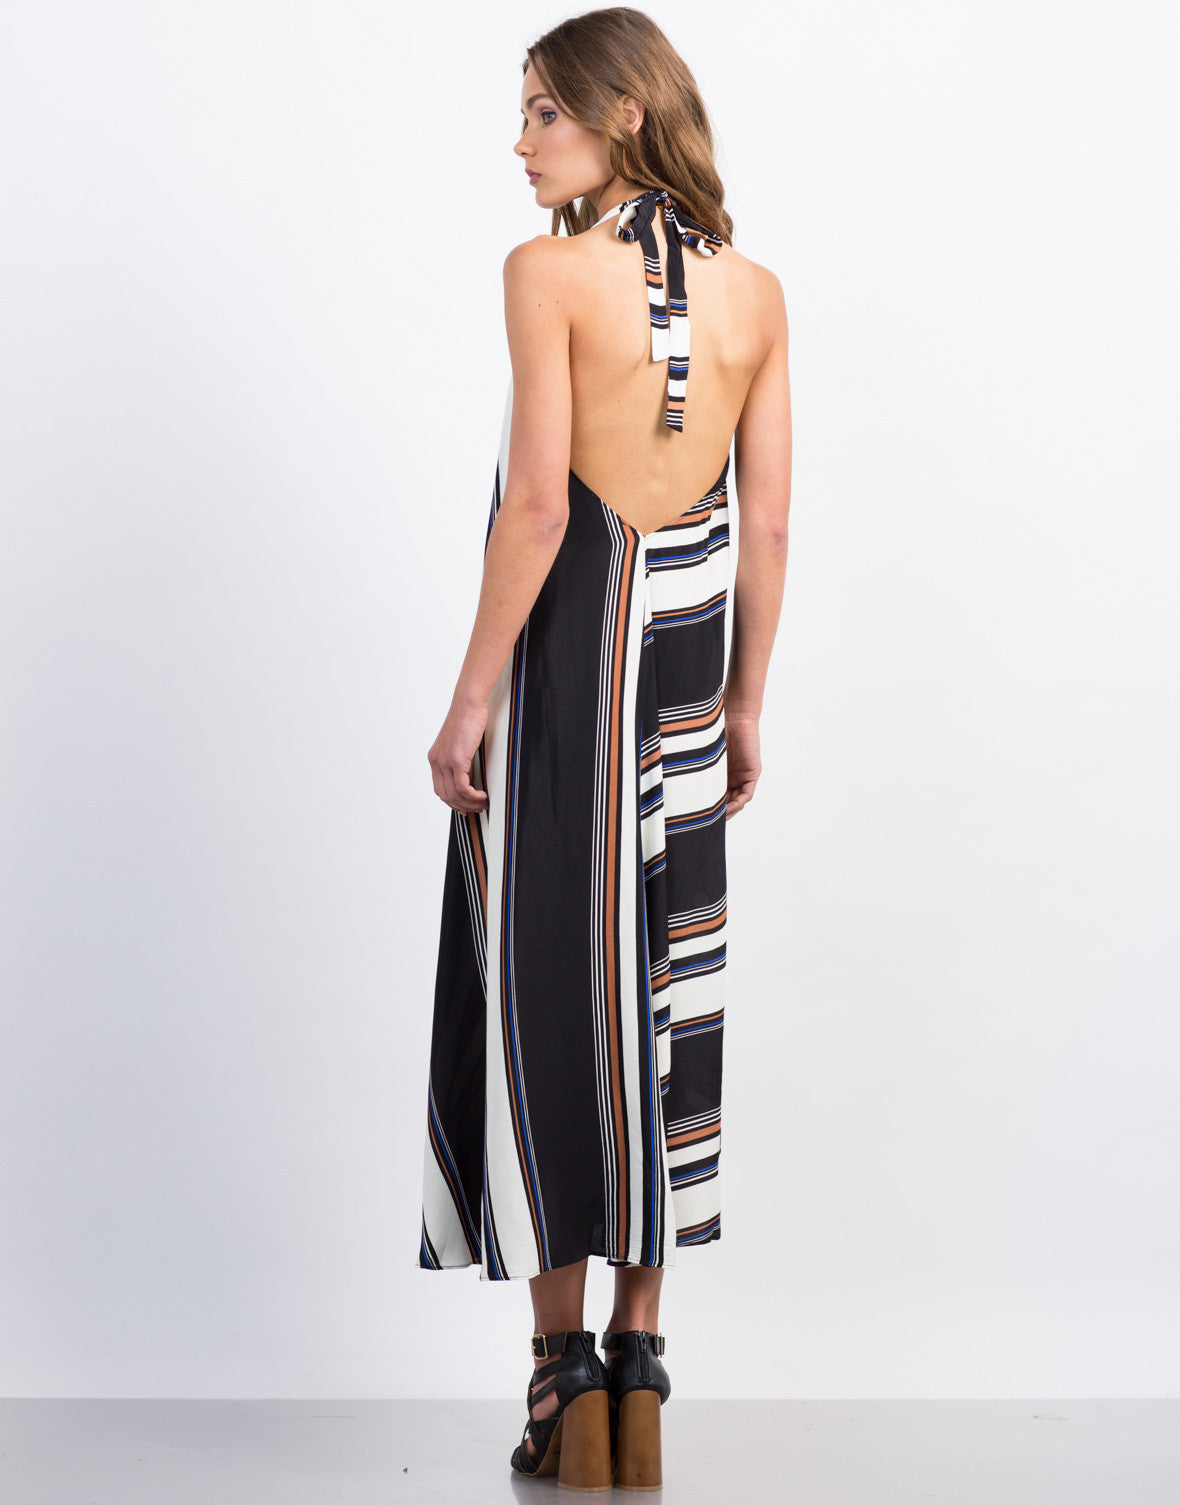 Back View of Multi-Striped Maxi Dress